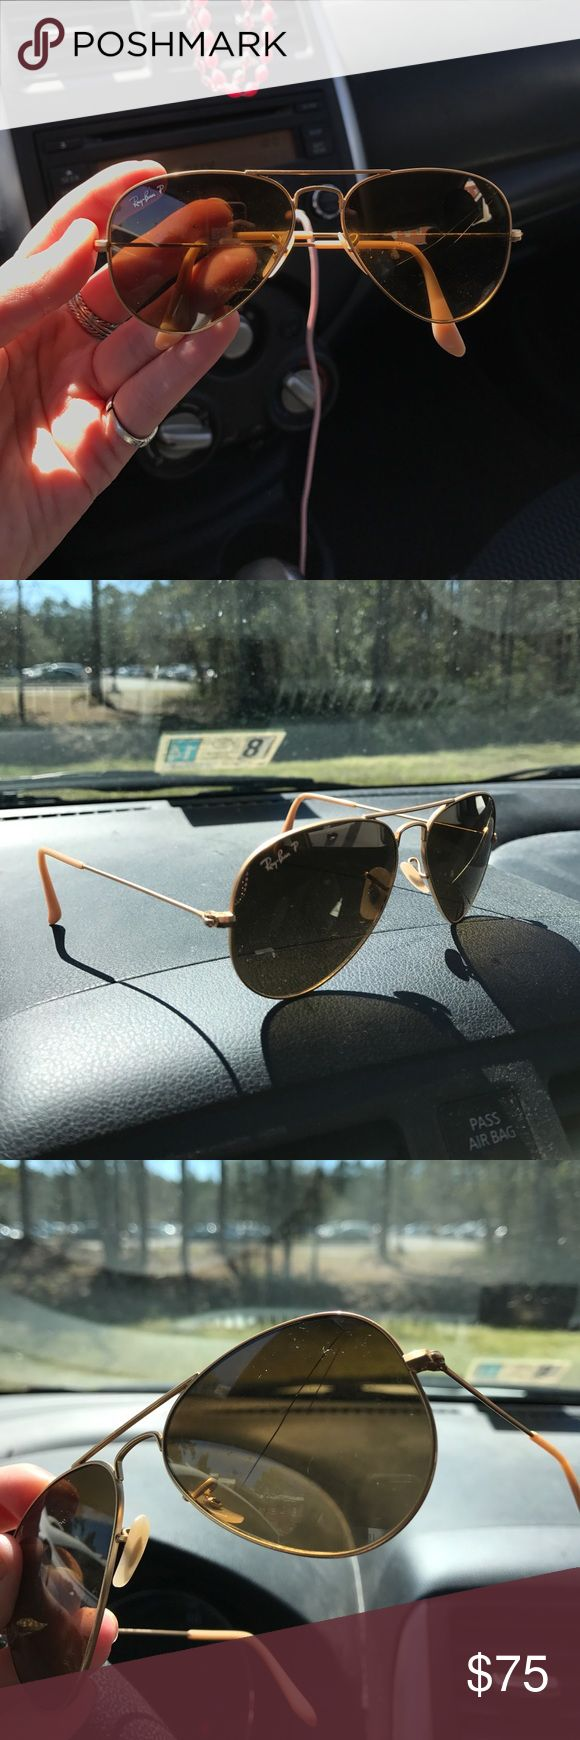 ray ban glass cracked  ray ban aviators